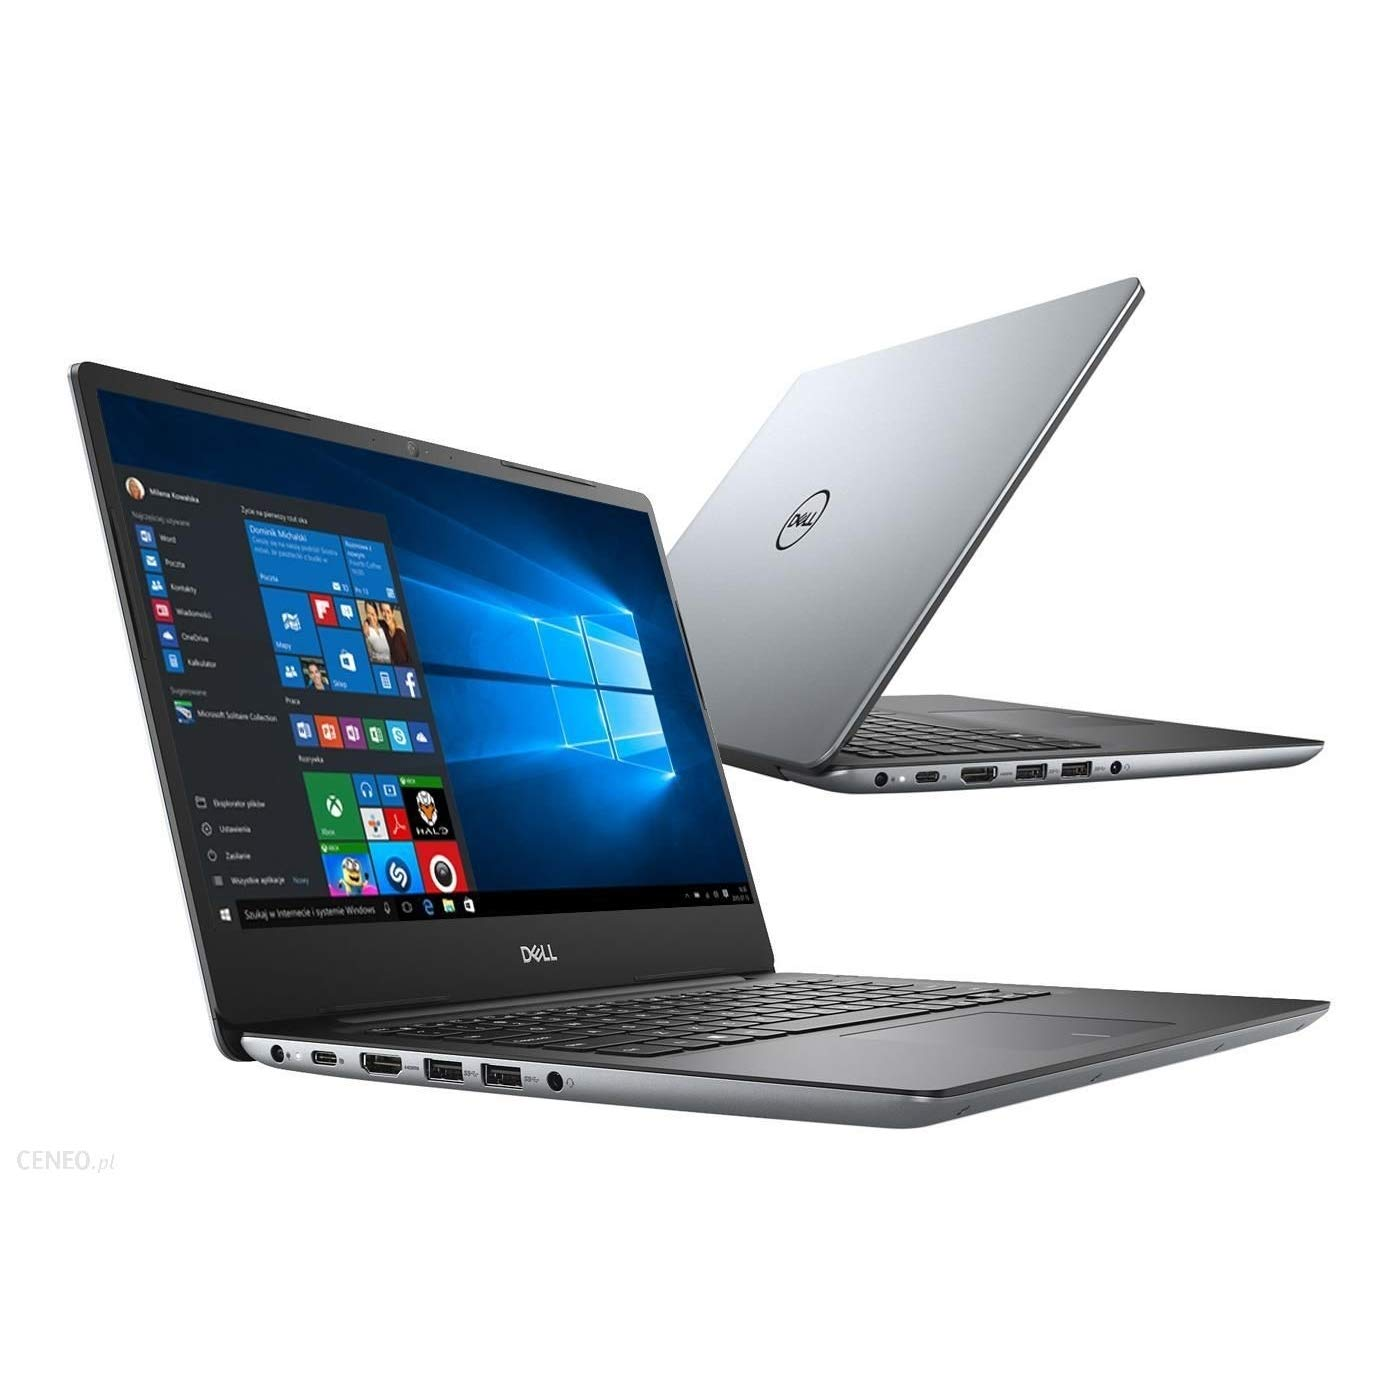 Dell Vostro 5481-V4I5229W (Urban Gray) | i5-8265U | 4GB DDR4 | HDD 1TB | VGA Onboard | 14.0 FHD IPS | Win10 + Office365 >>> Deal giá mua, Trả góp 0%